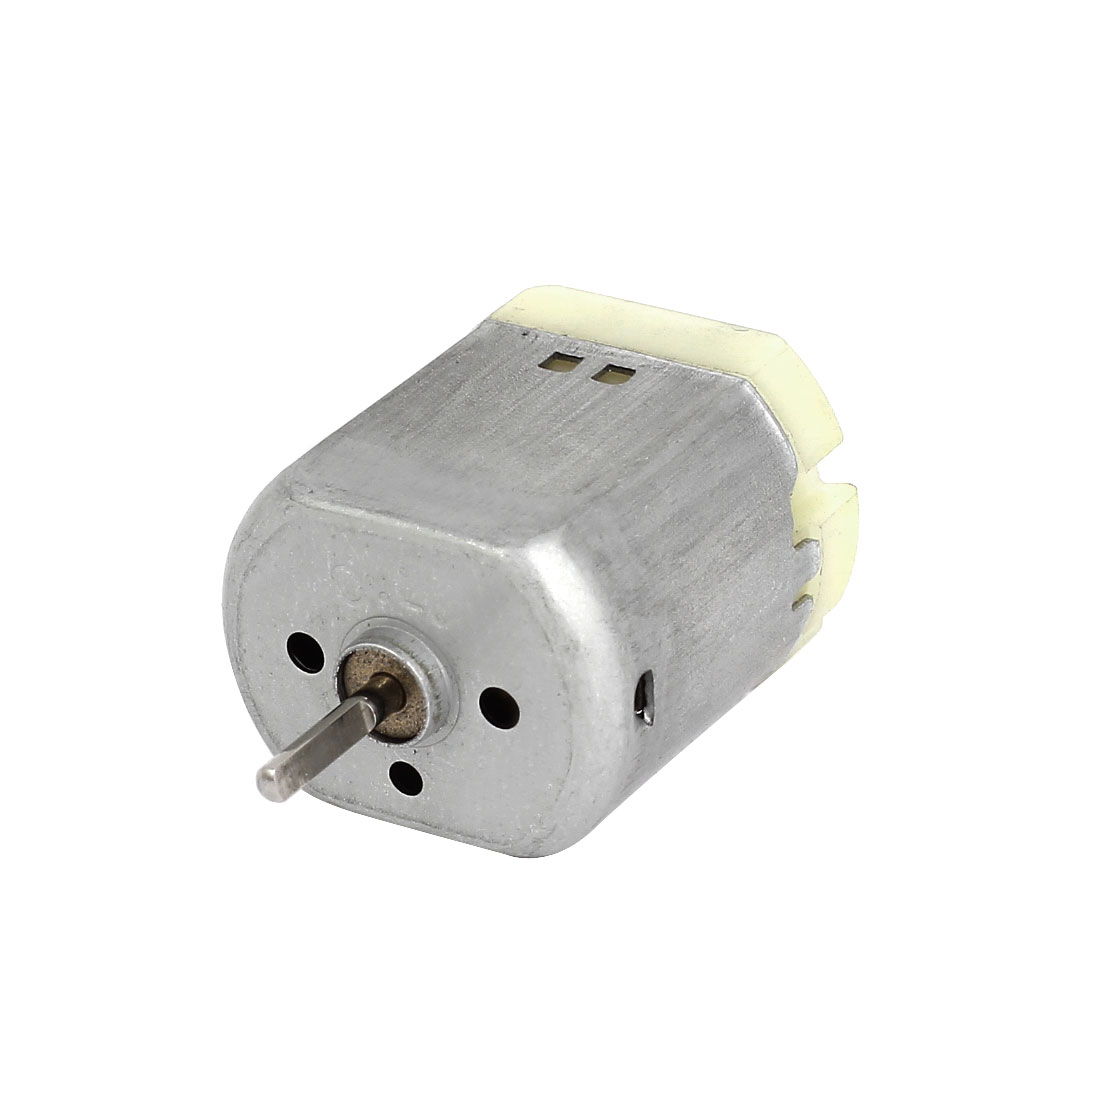 12000RPM/6000RPM 12V 70mA/6V 50mA High Torque Magnetic Electric DC Motor